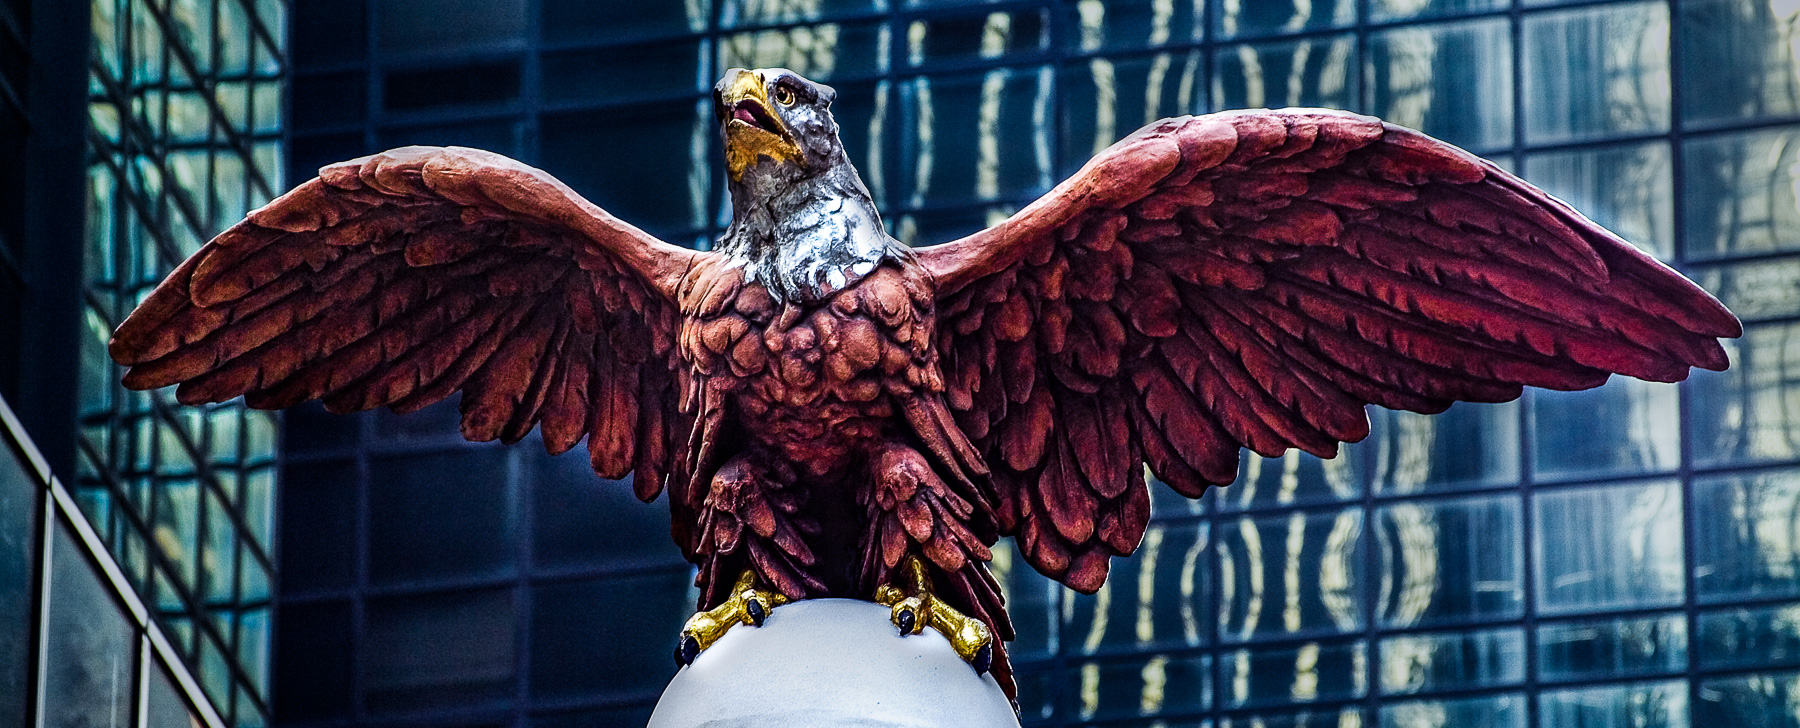 Photograph of statue of Eagle, New York City